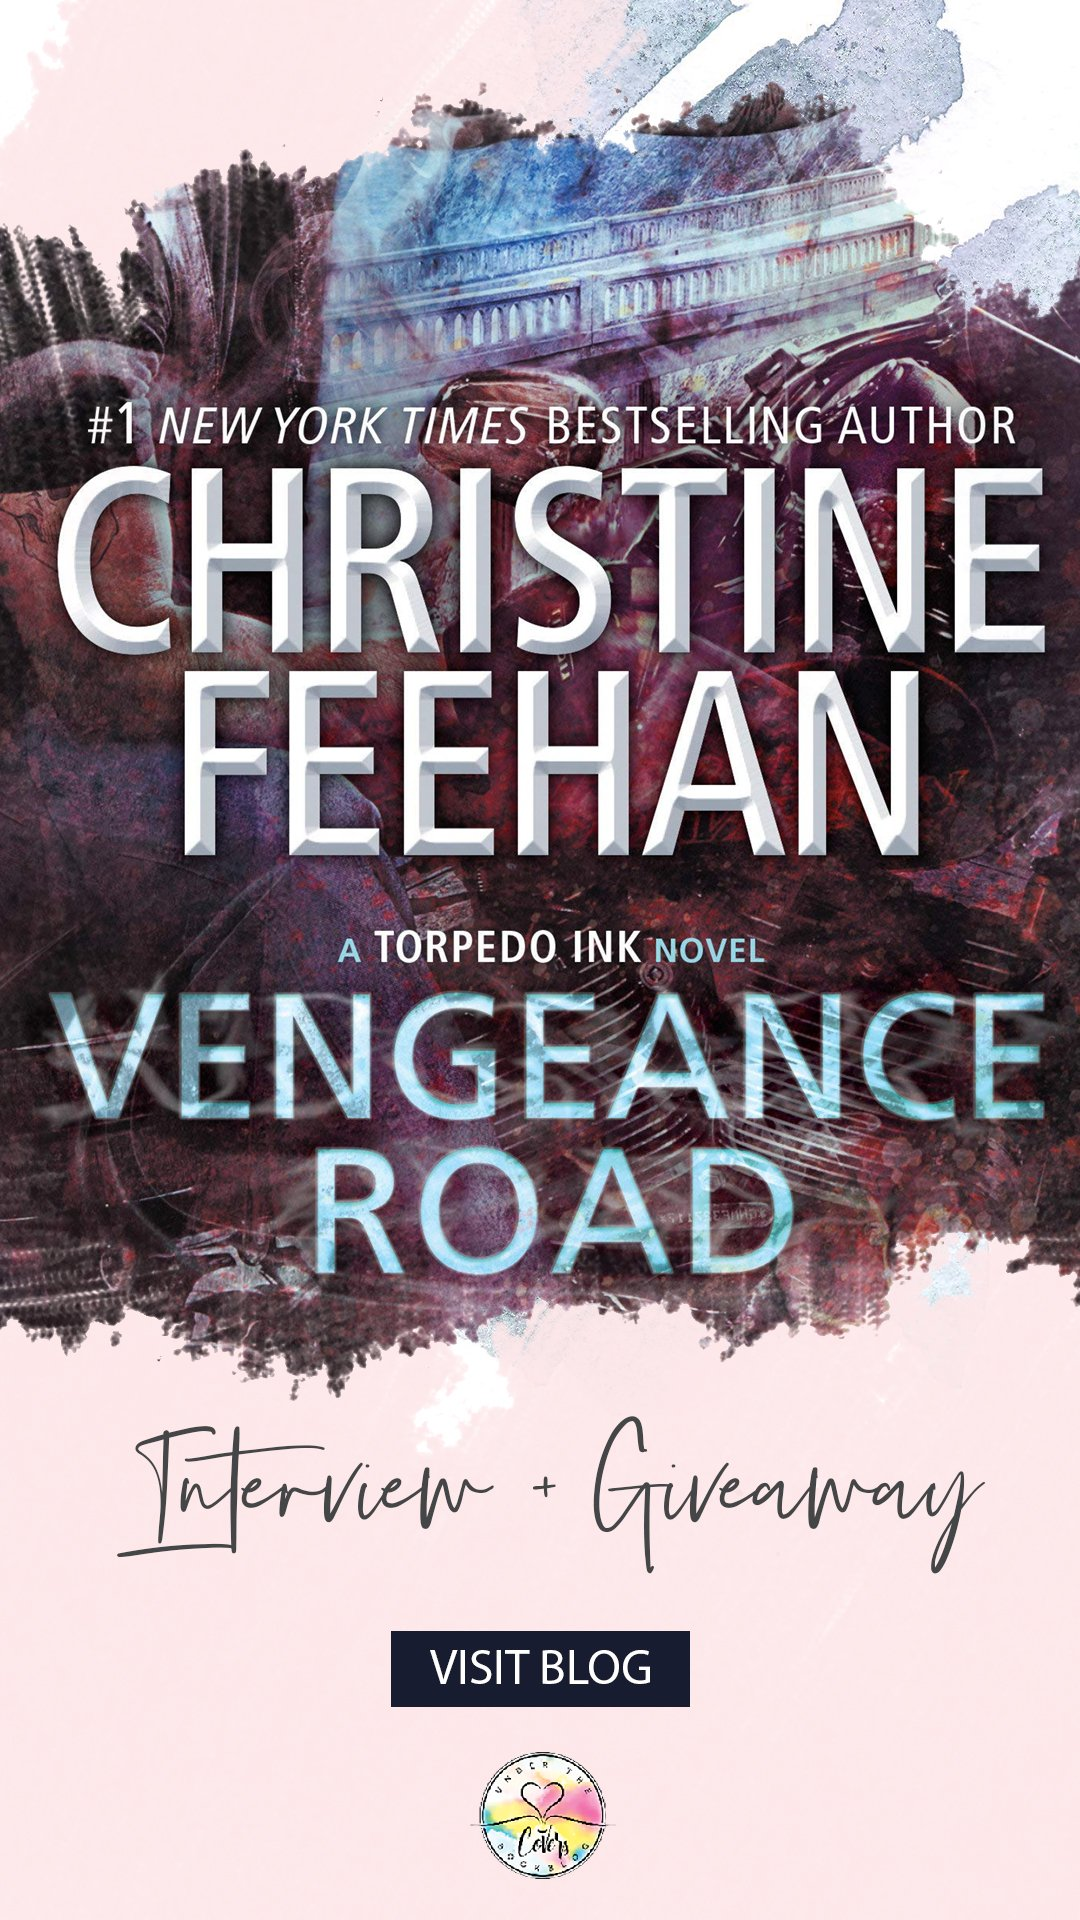 Interview and Giveaway with Christine Feehan